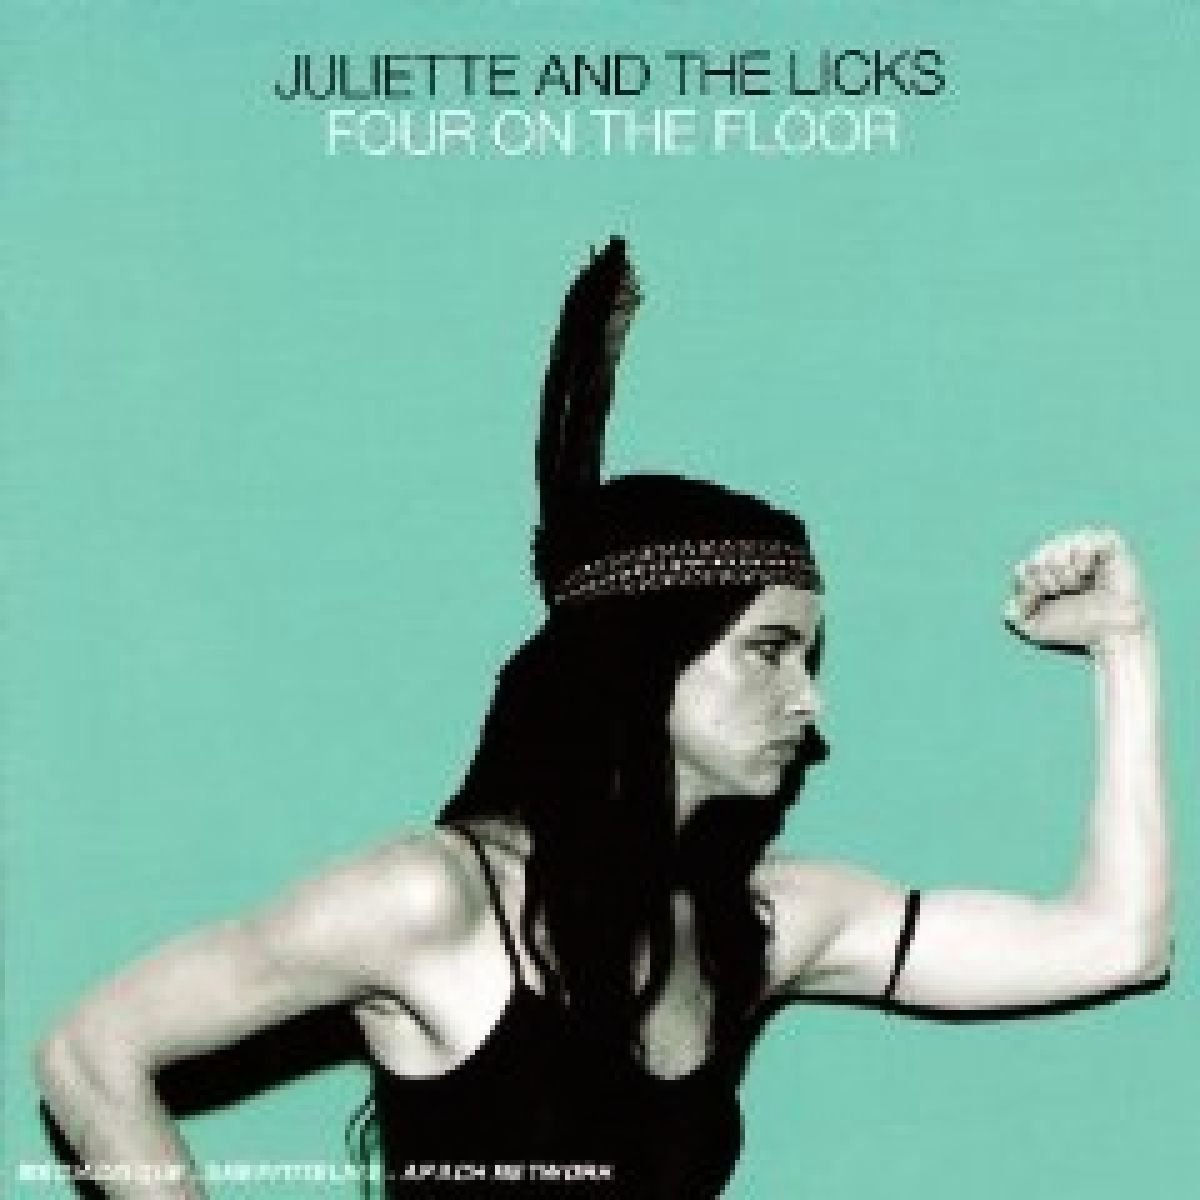 Cd review juliette and the licks four on the floor - 2019 year